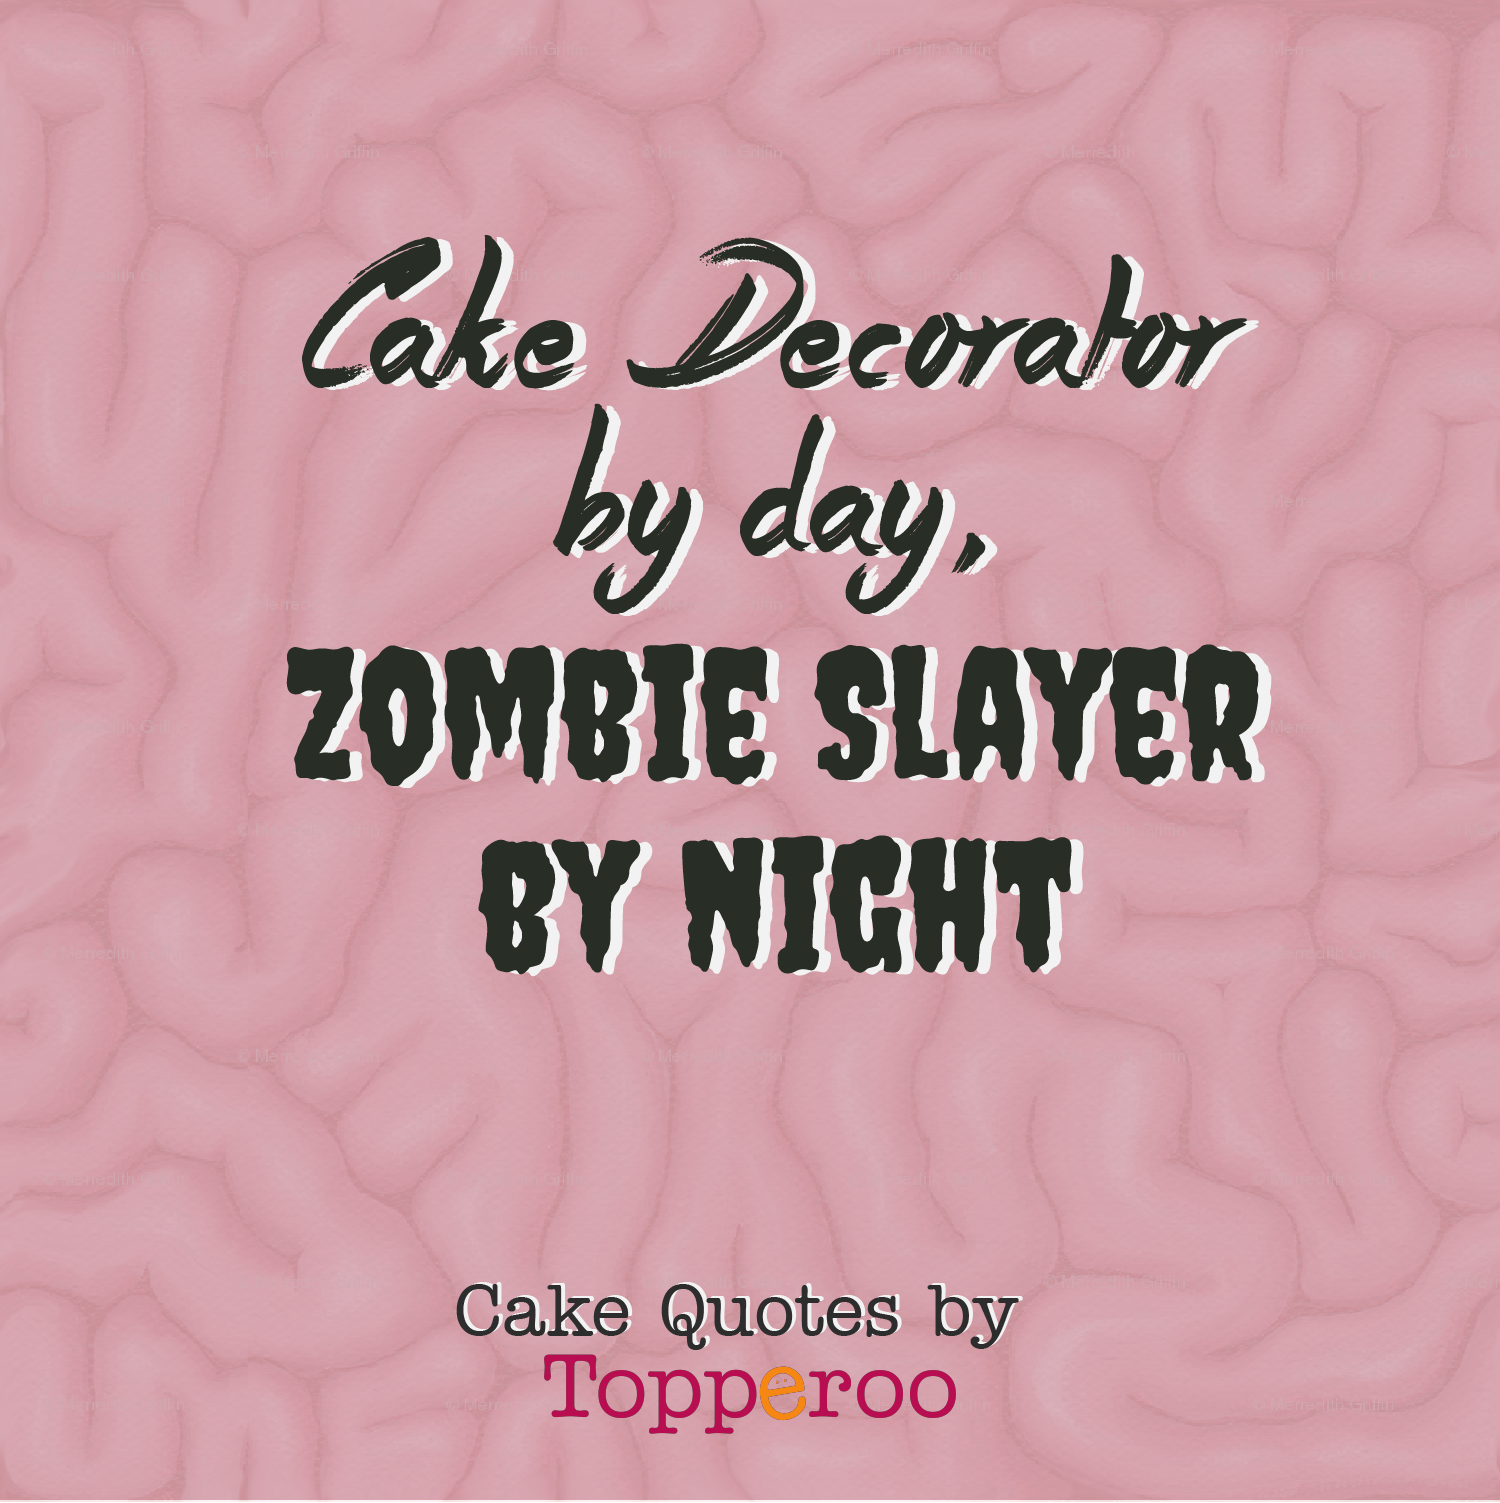 Cake Decorator By Day Zombie Slayer By Night Cake Quotes